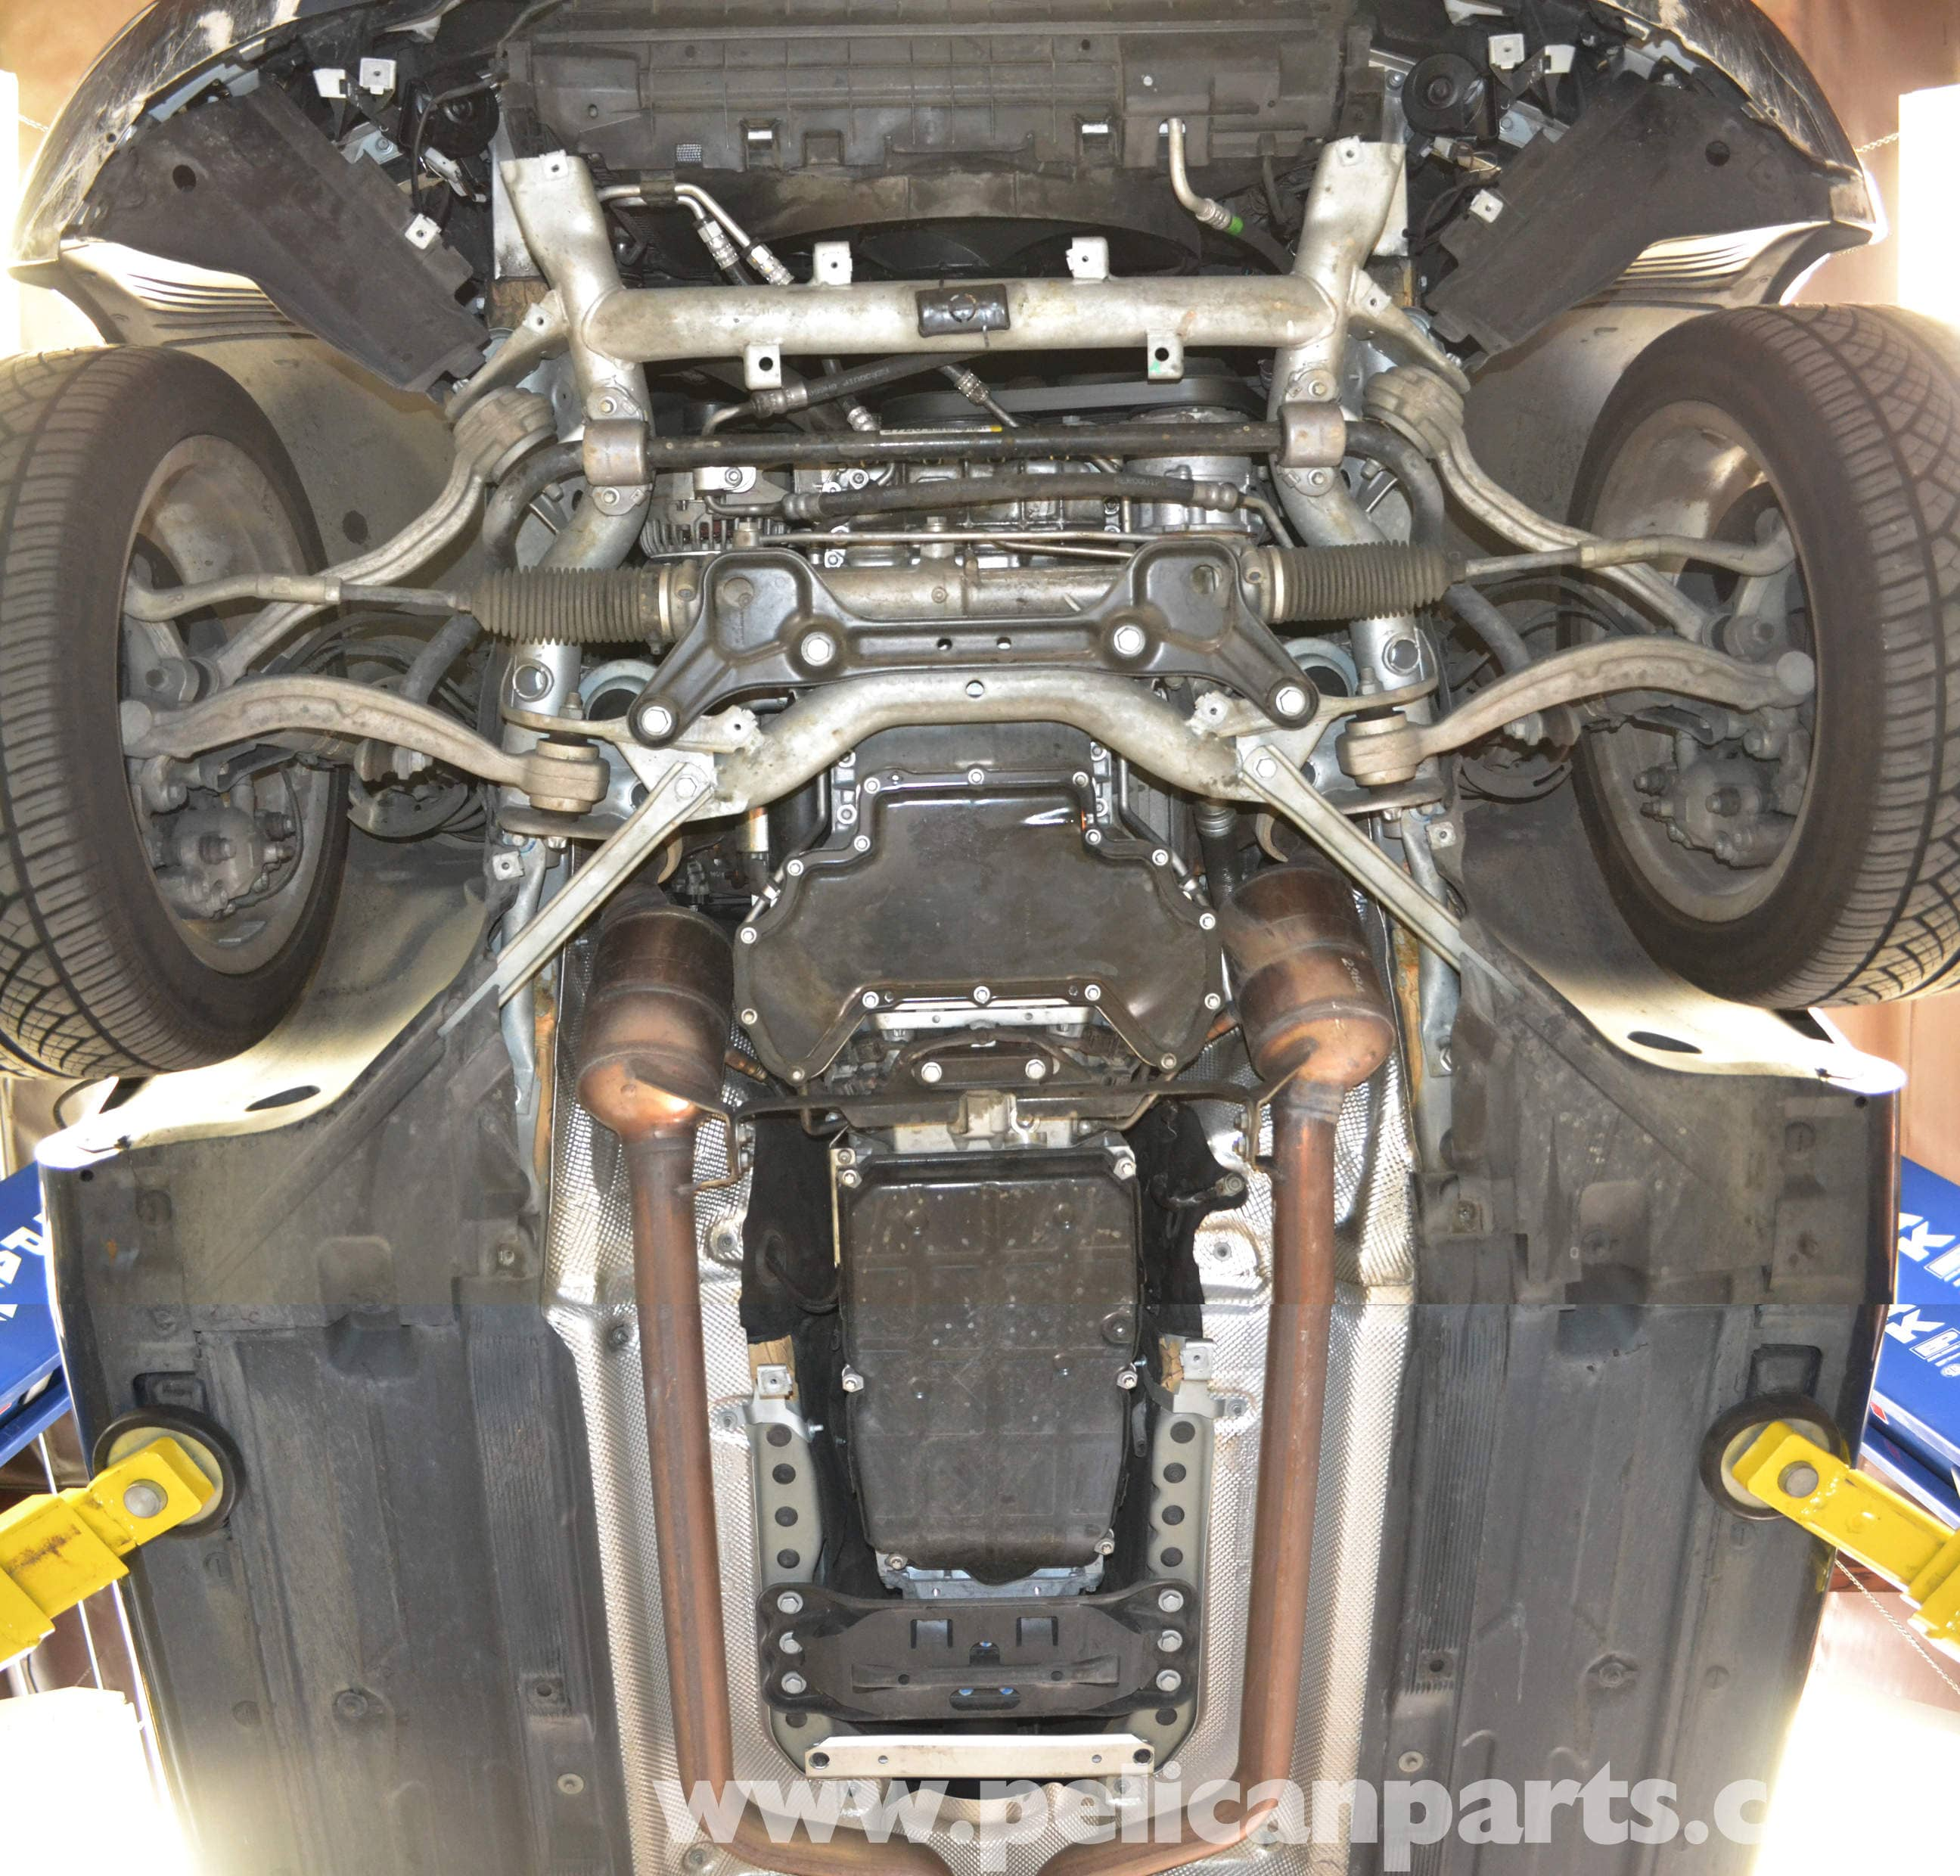 Please Help Looking For A Transmission Removal Diy: Mercedes-Benz W204 Underbody Tray Removal